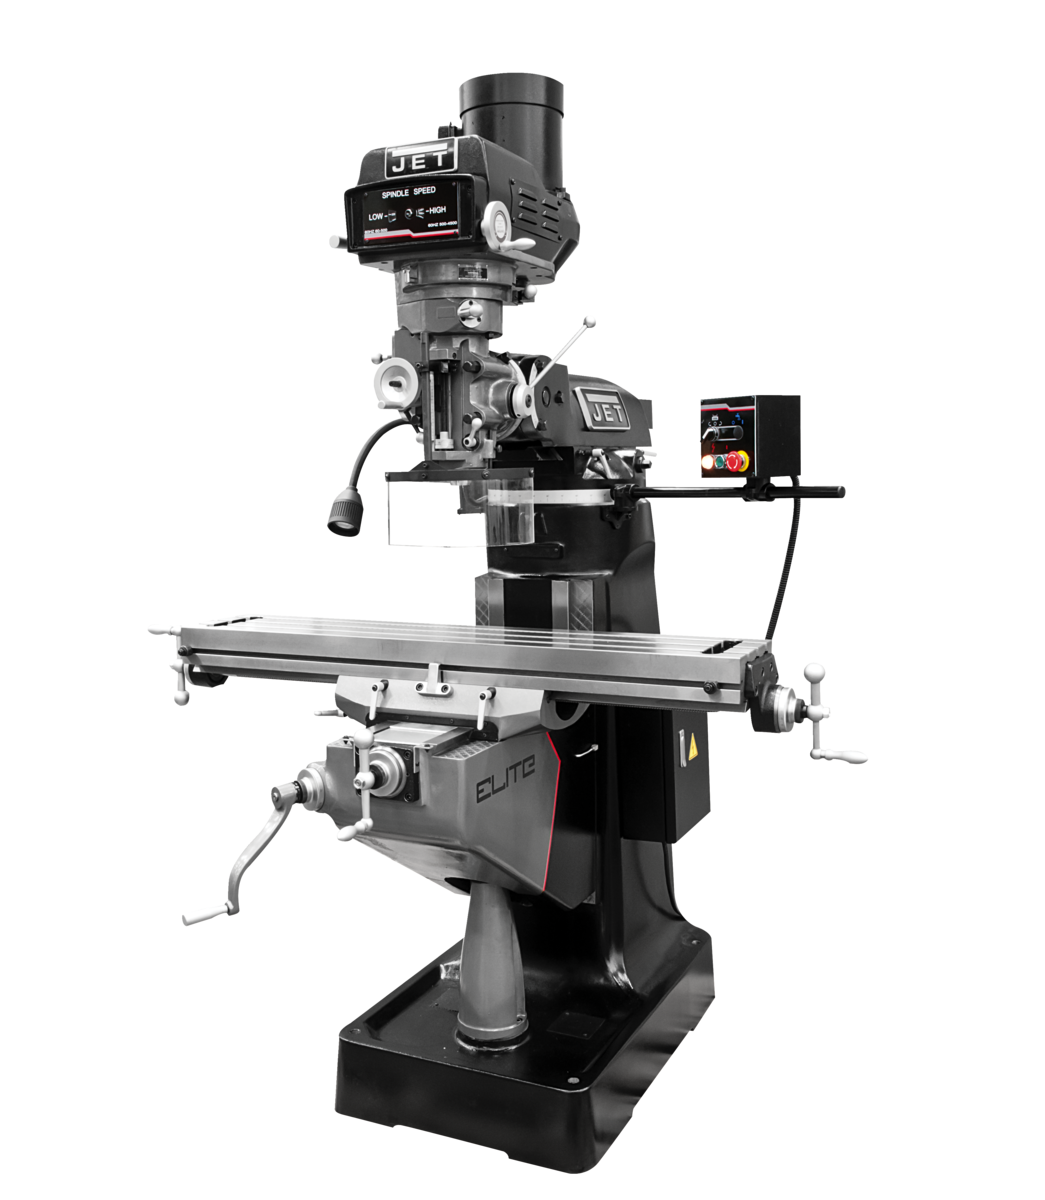 ETM-949 Mill with 3-Axis ACU-RITE 303  (Quill) DRO and X-Axis JET Powerfeed and USA Made Air Draw Bar